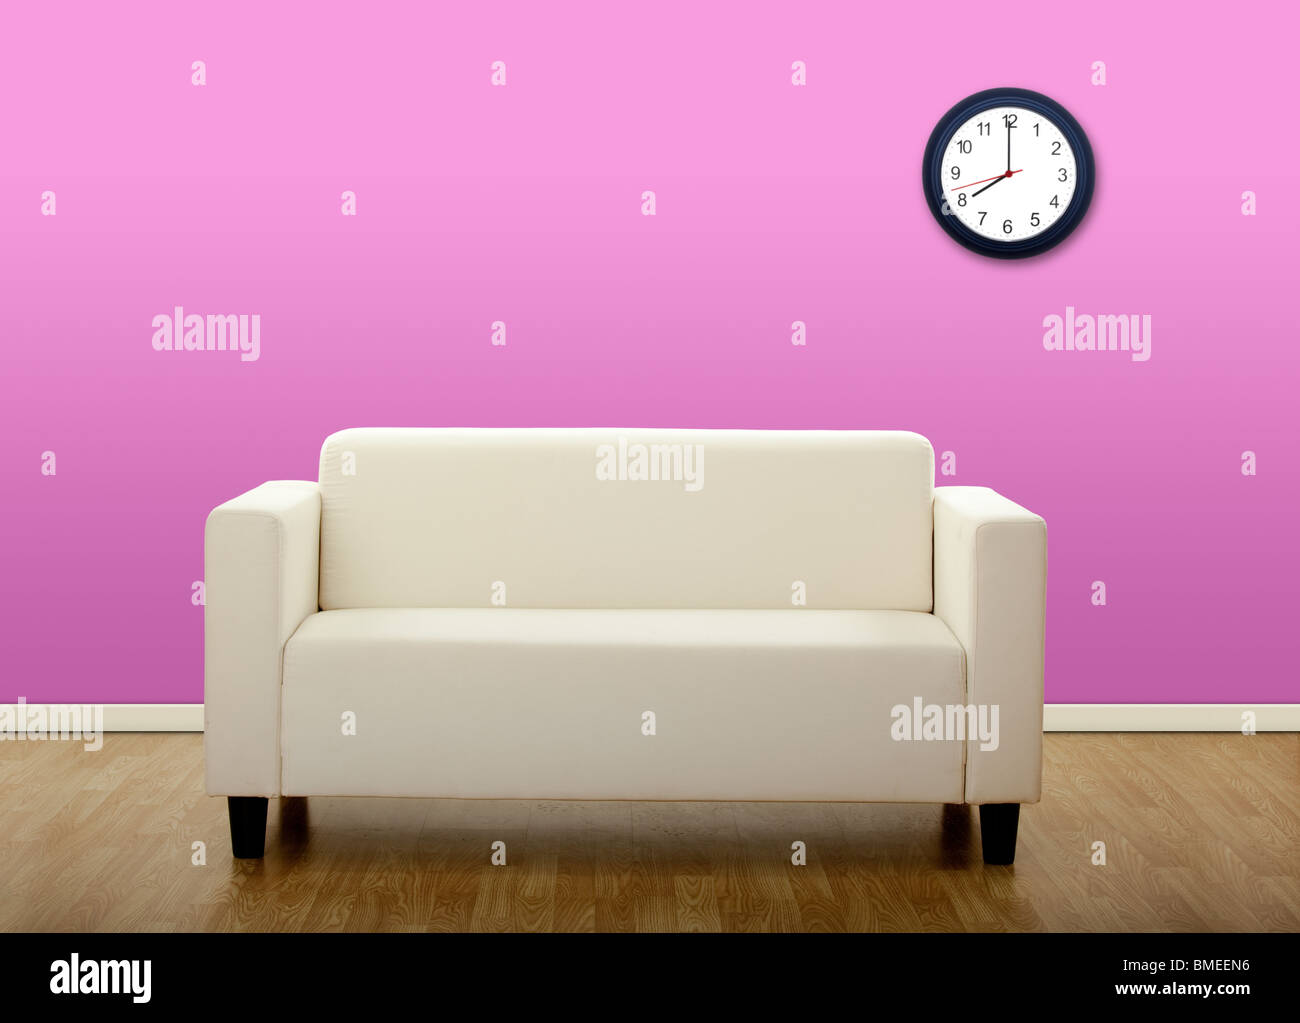 Picture of a house with a sofa in the center - Stock Image